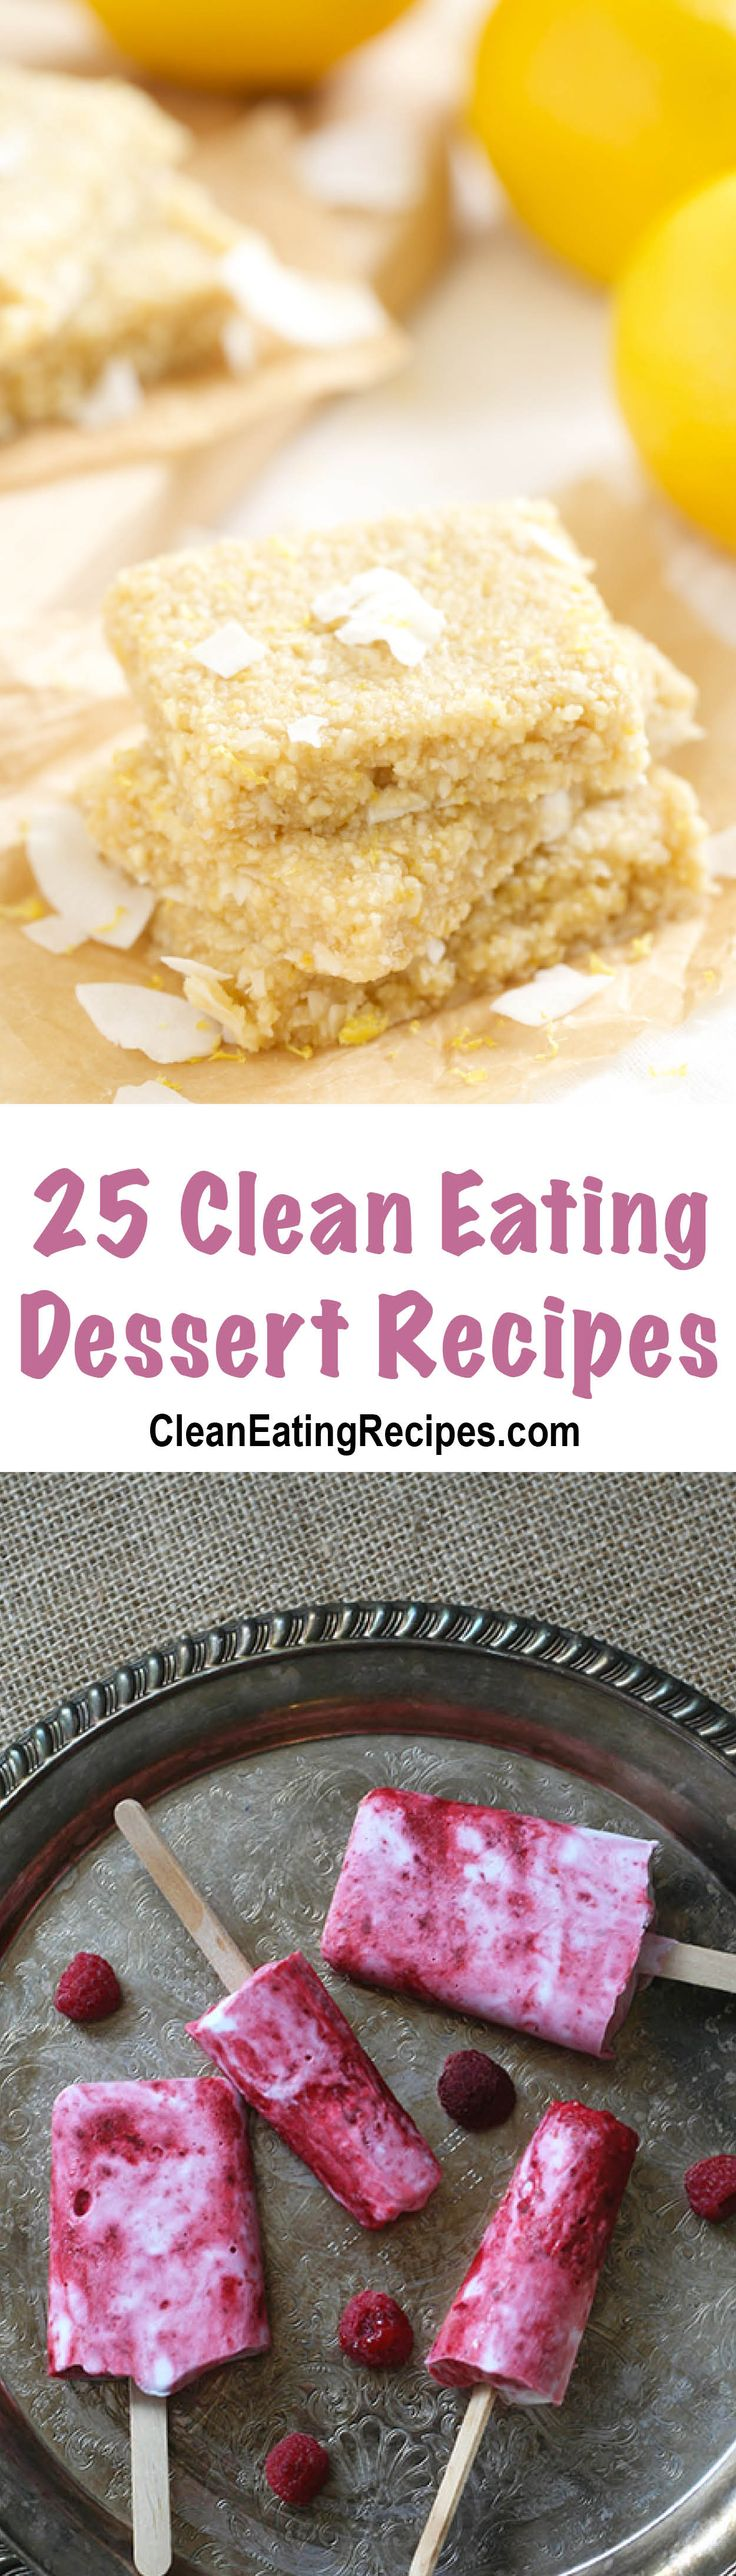 25 Clean Eating Dessert Recipes. I love this selection! Pinning for later.